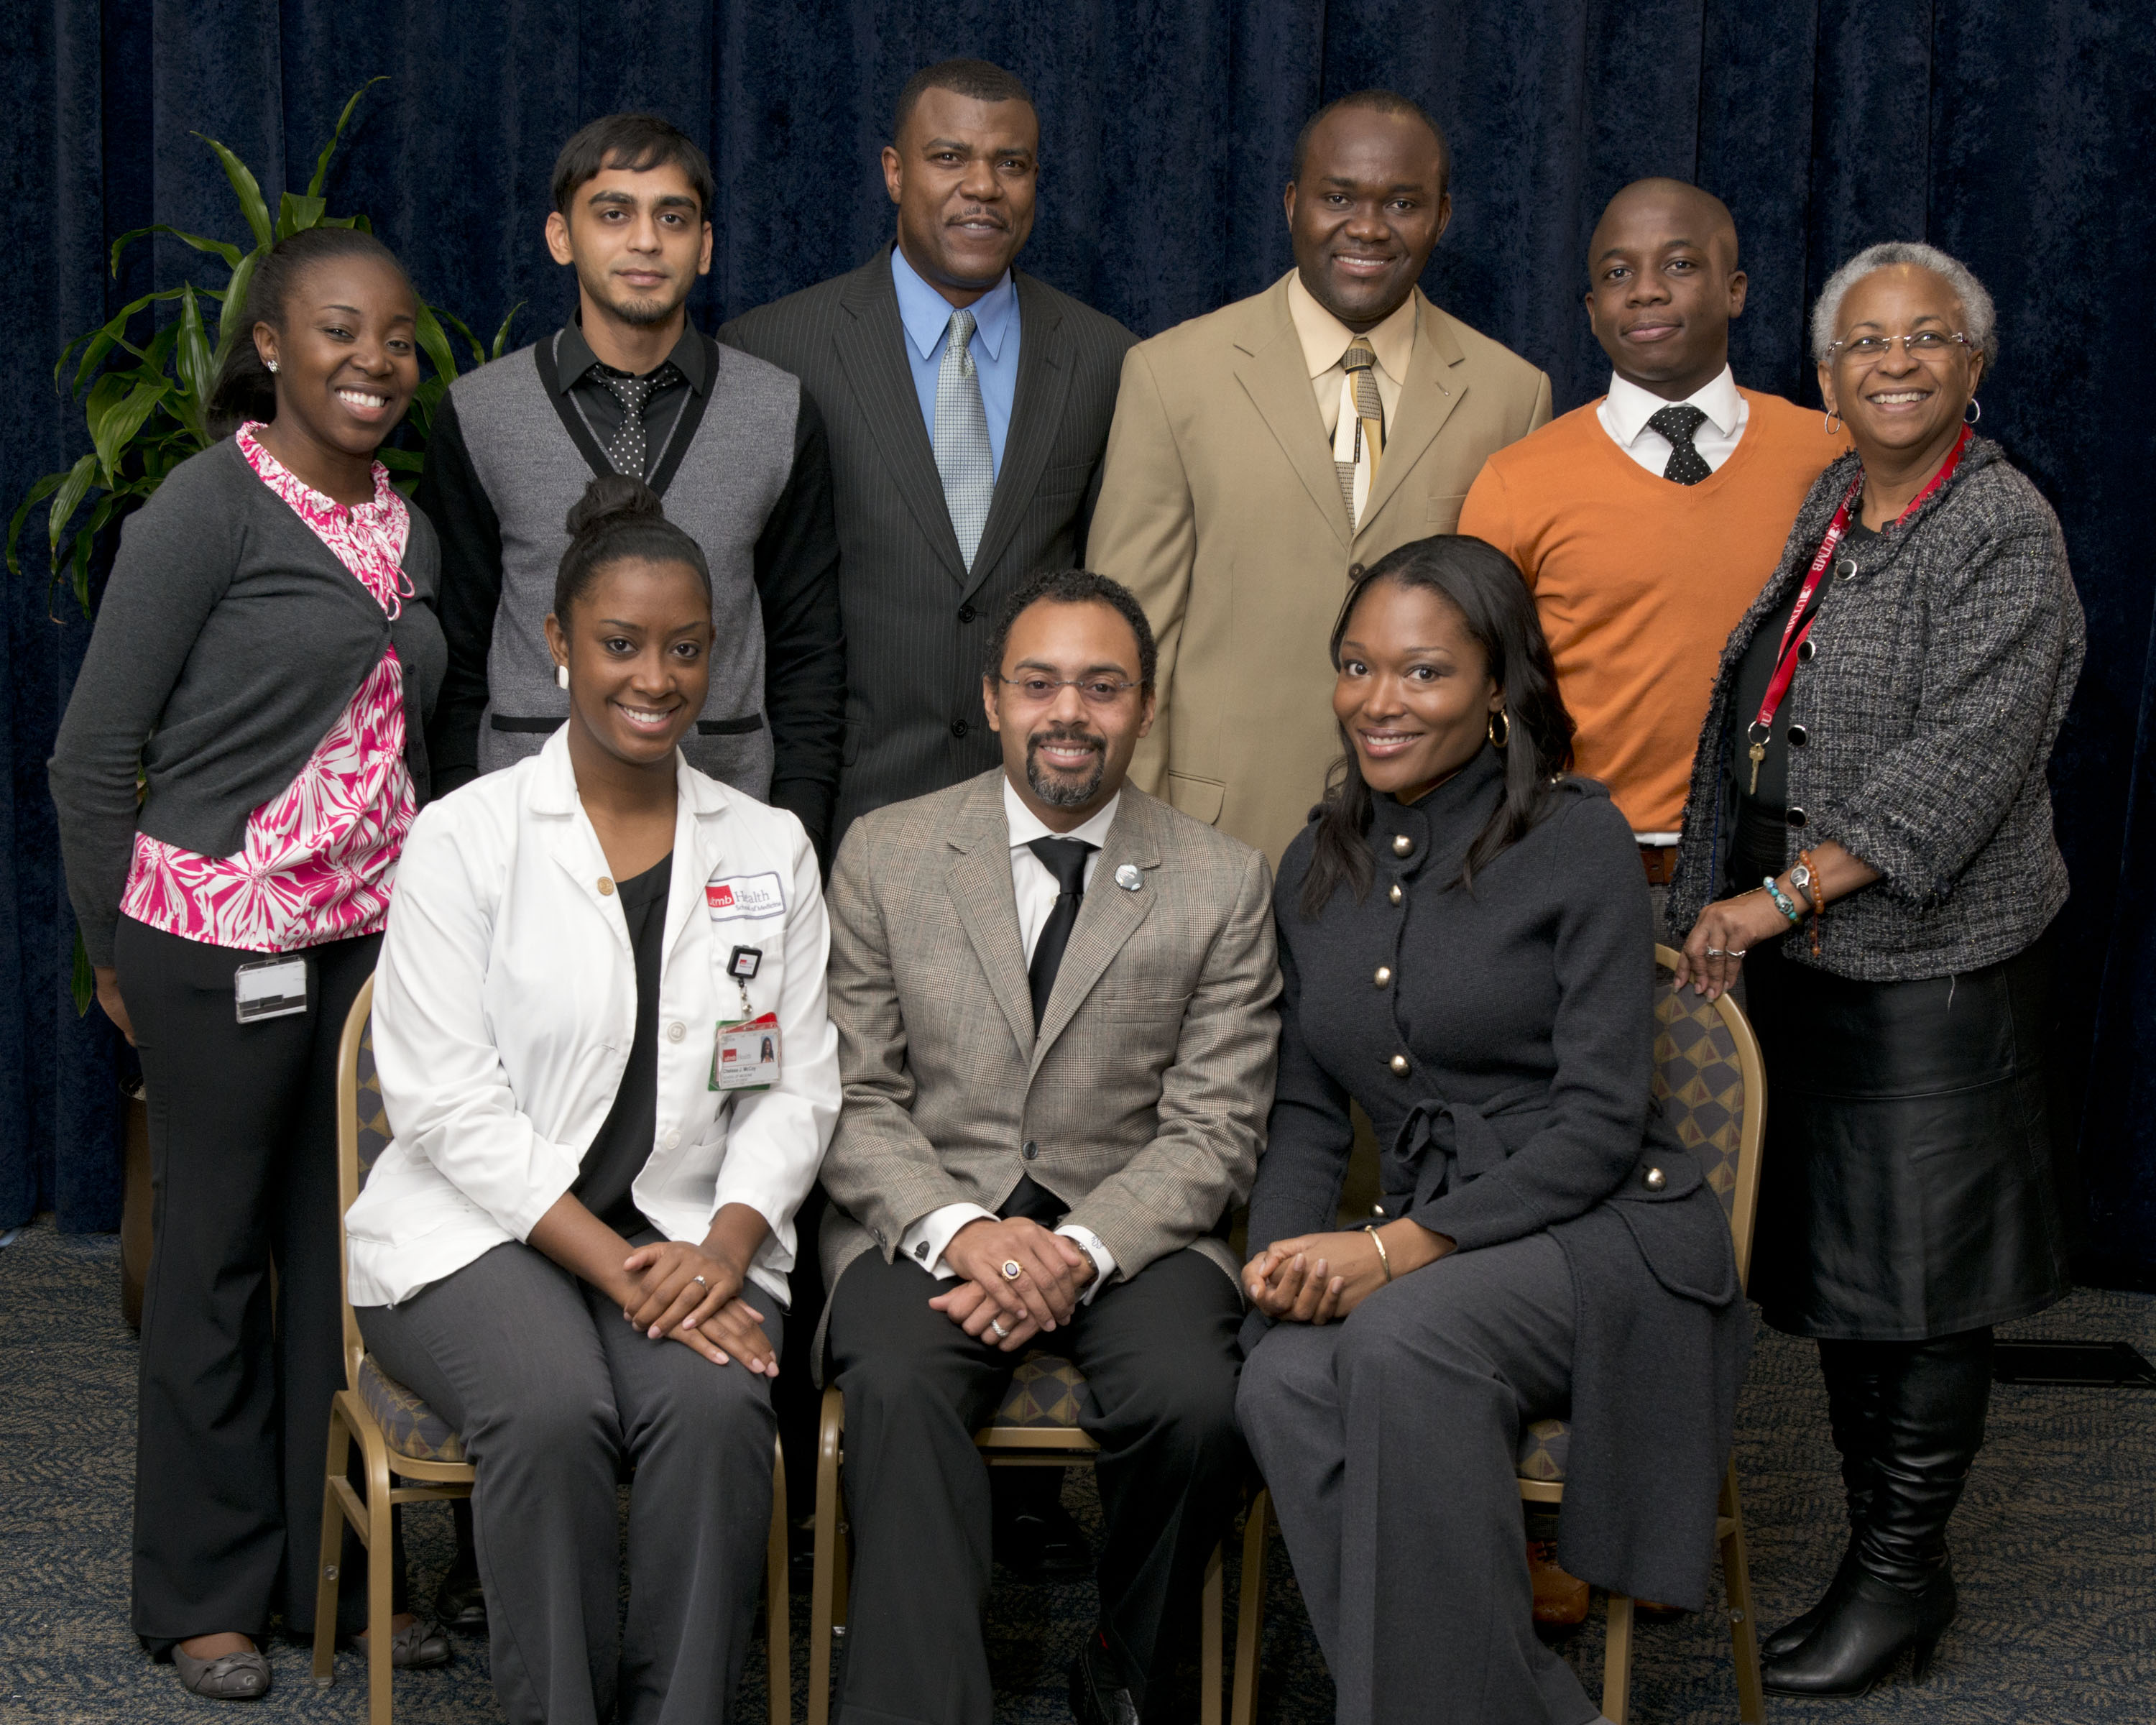 Program Committee members included Jaisie Stevens, Victor Jackson, Johnny Scott, Adeola Oduwole, Yoni Benson, Kelly L. Panfilli (not pictured),Chelsea McCoy, Ketul Patel, Oluwarotimi Folorunso and Larry Krcma (not pictured).